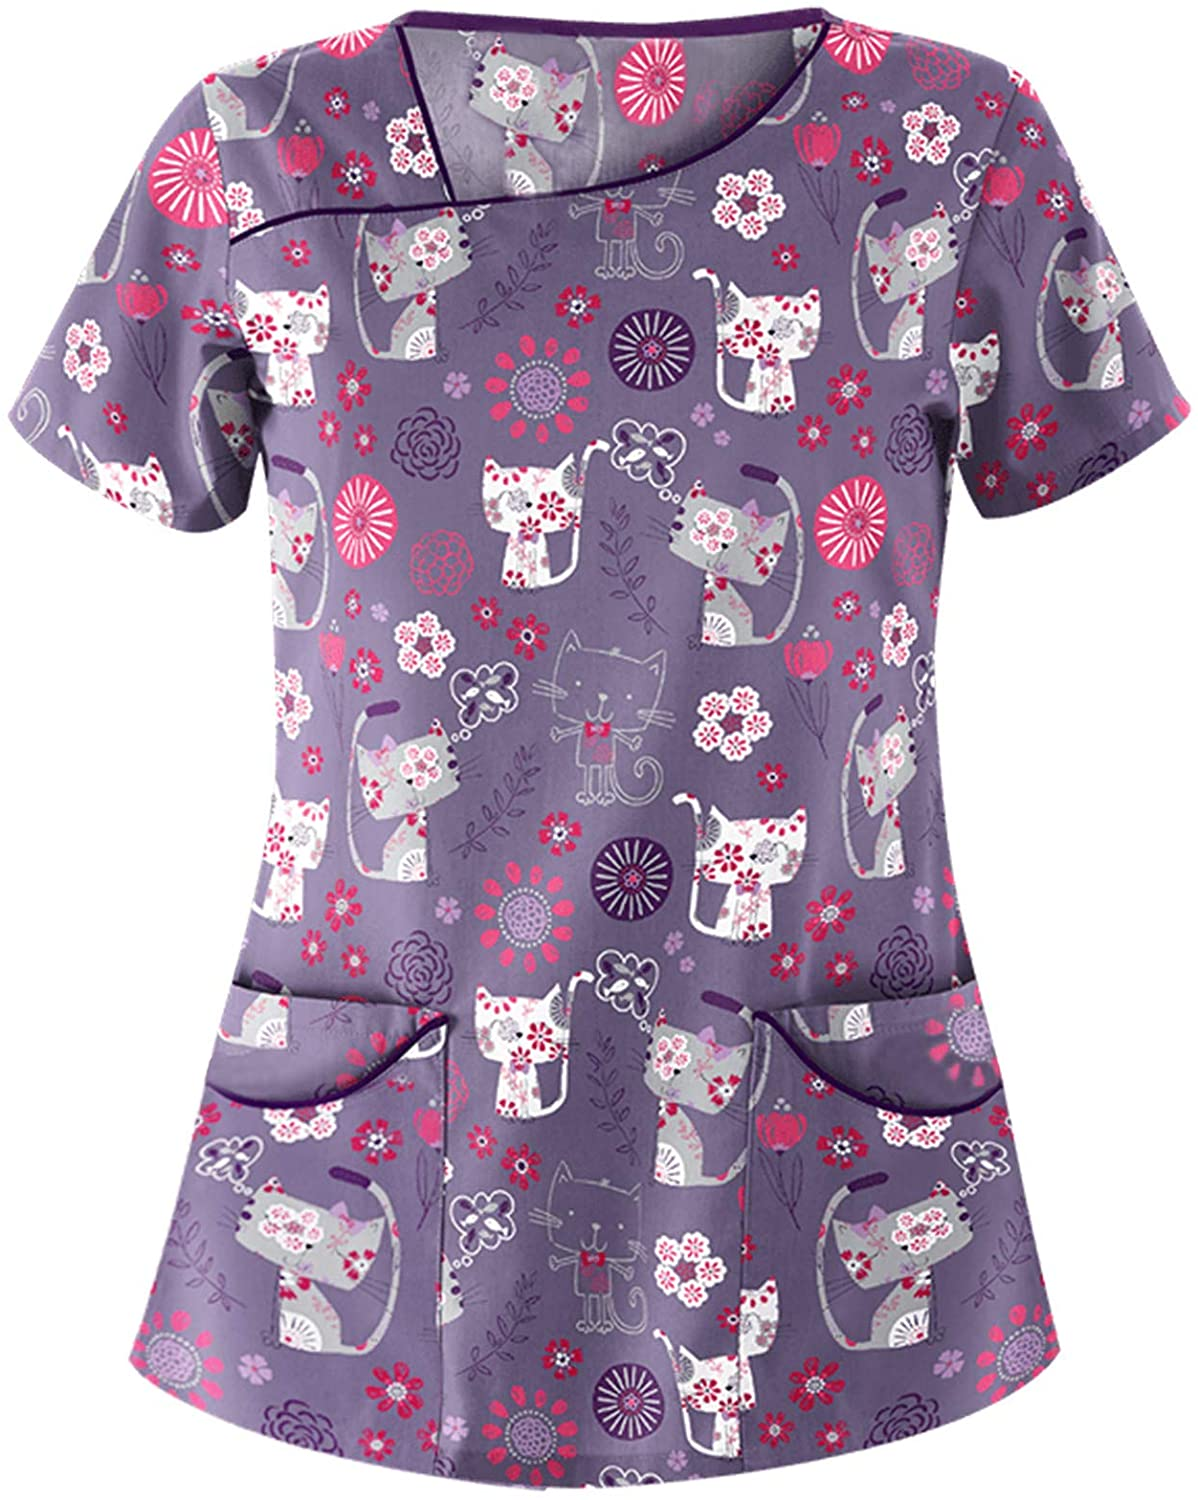 Women Cute Scrub/_Top Butterfly Printed Graphic Tee Shirts Short Sleeve V-Neck Working Uniform Tops